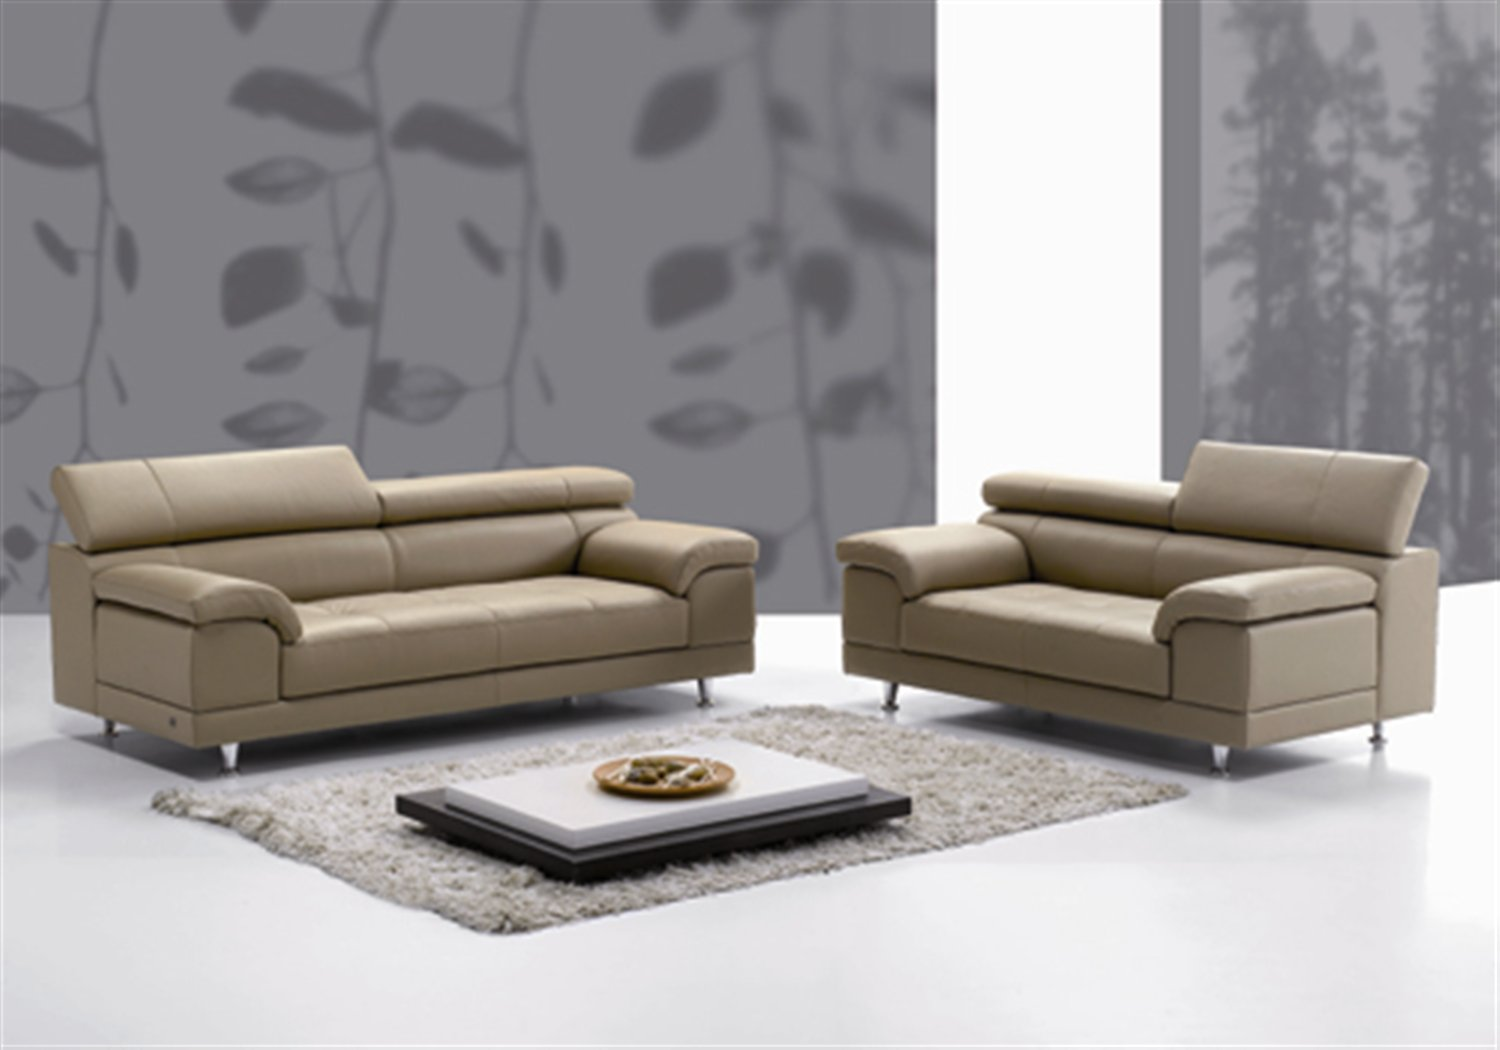 italian leather sofas premium style for your place who makes good quality leather sofa